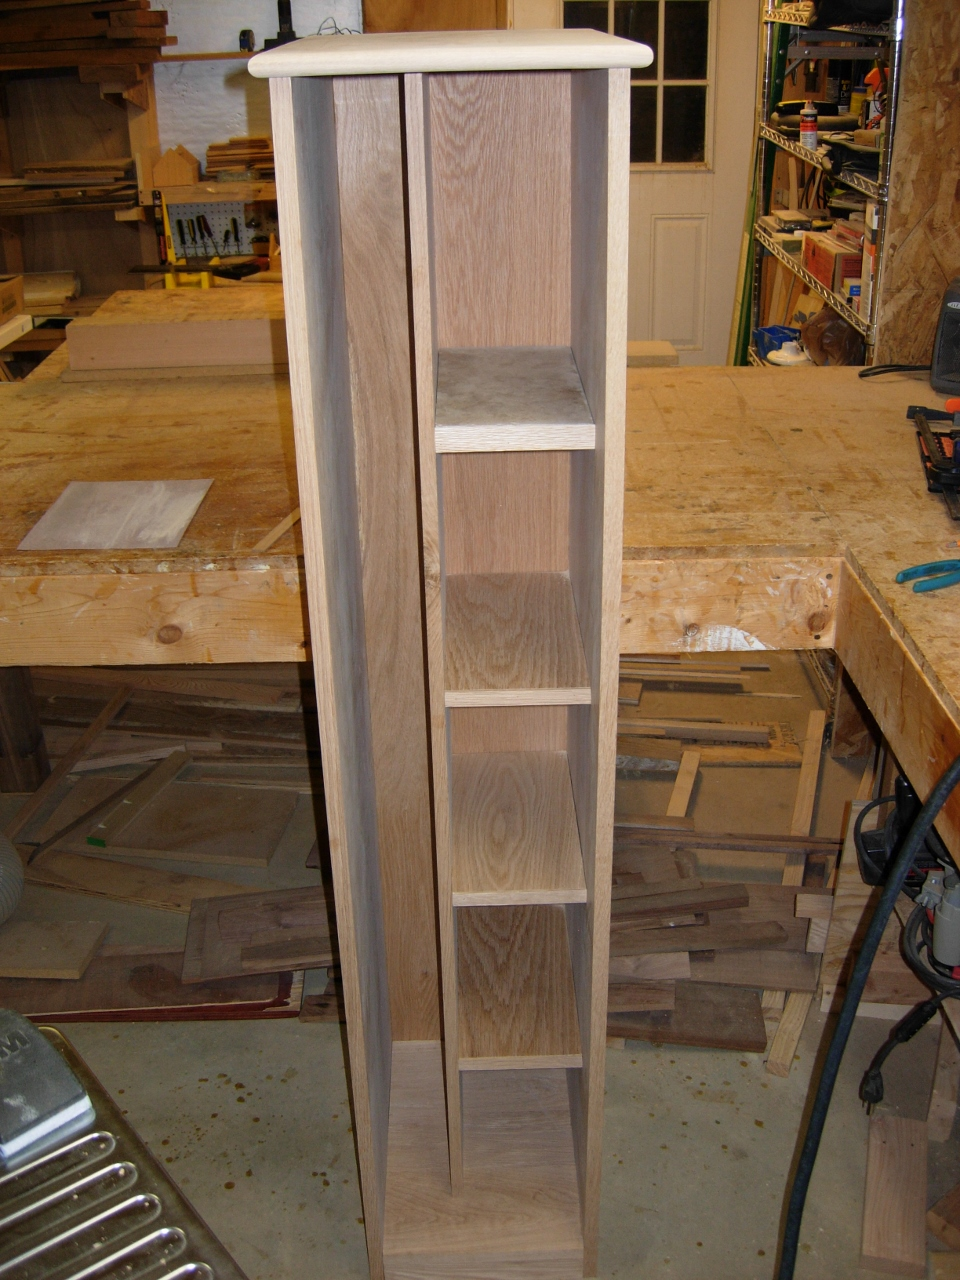 Ironing Board Storage Cabinet Day 6 Midnight Woodworking